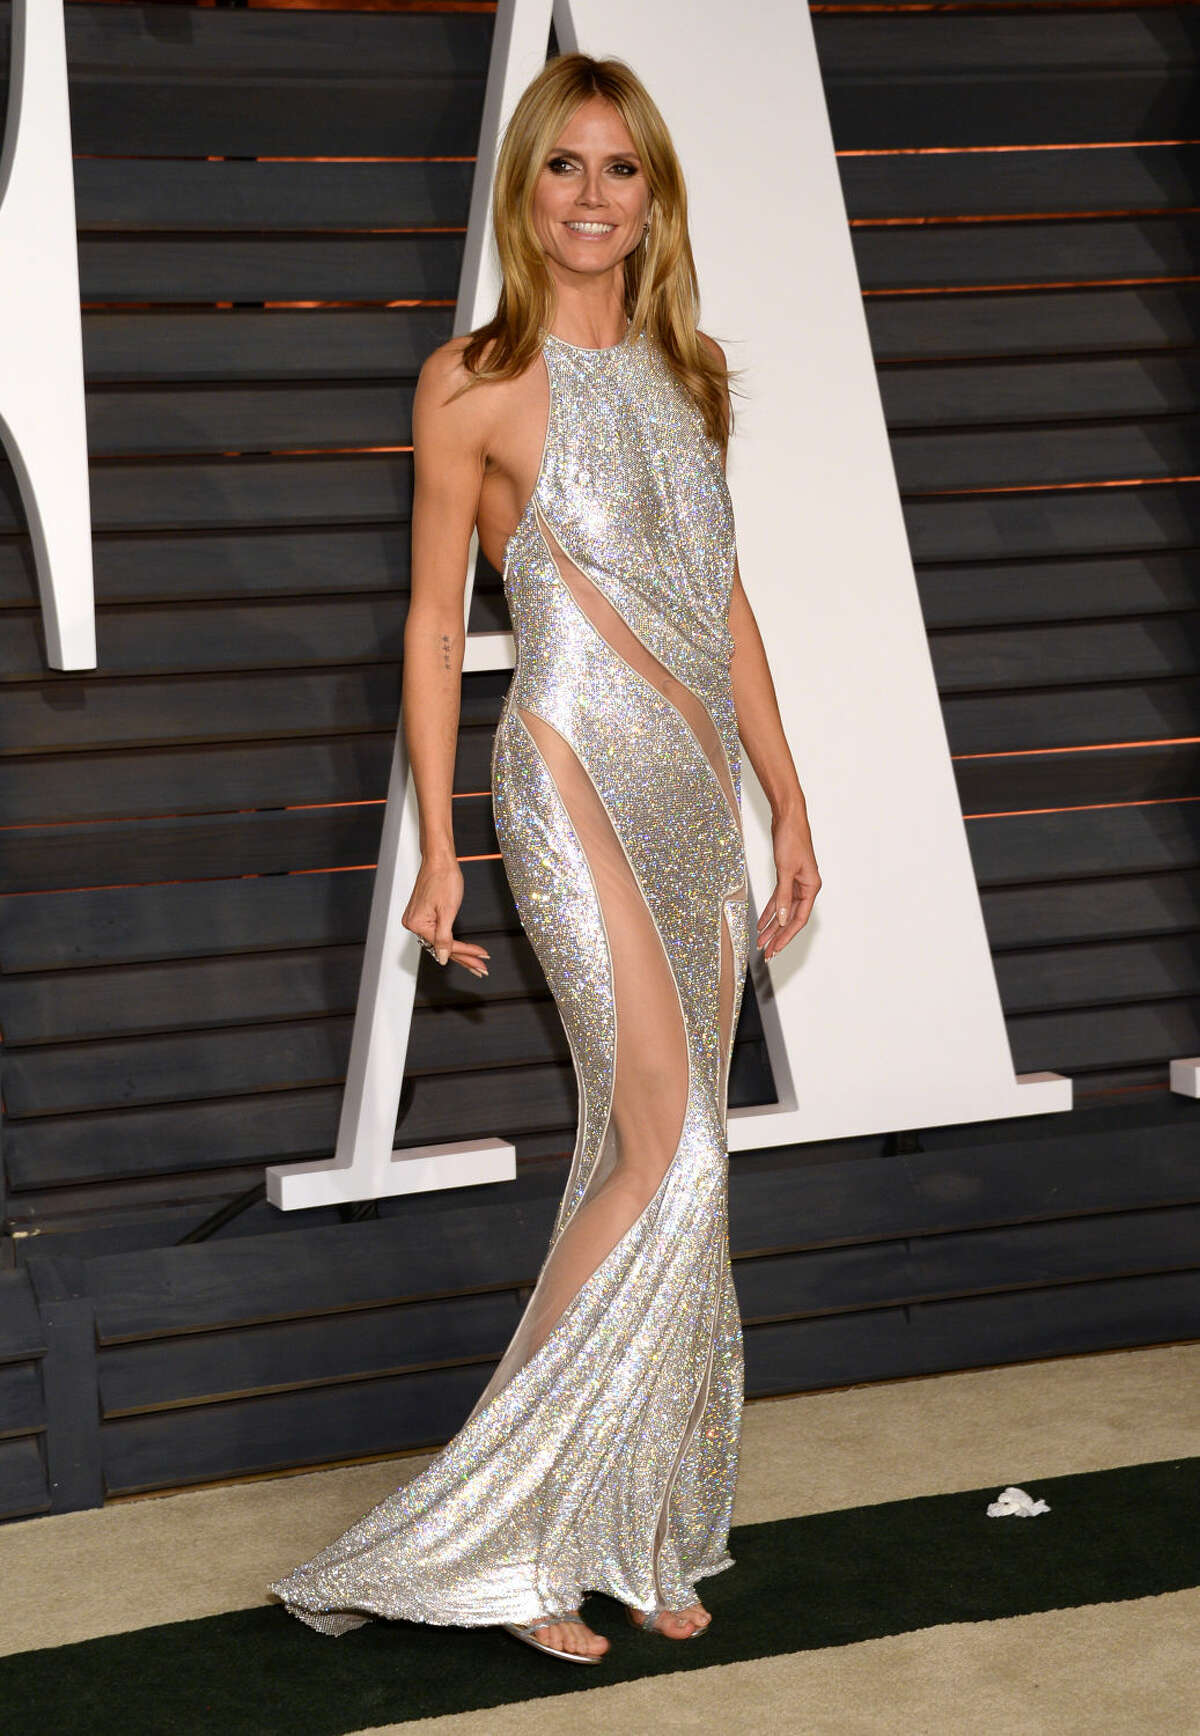 Heidi Klum arrives at the 2015 Vanity Fair Oscar Party on Sunday, Feb. 22, 2015, in Beverly Hills, Calif. (Photo by Evan Agostini/Invision/AP)